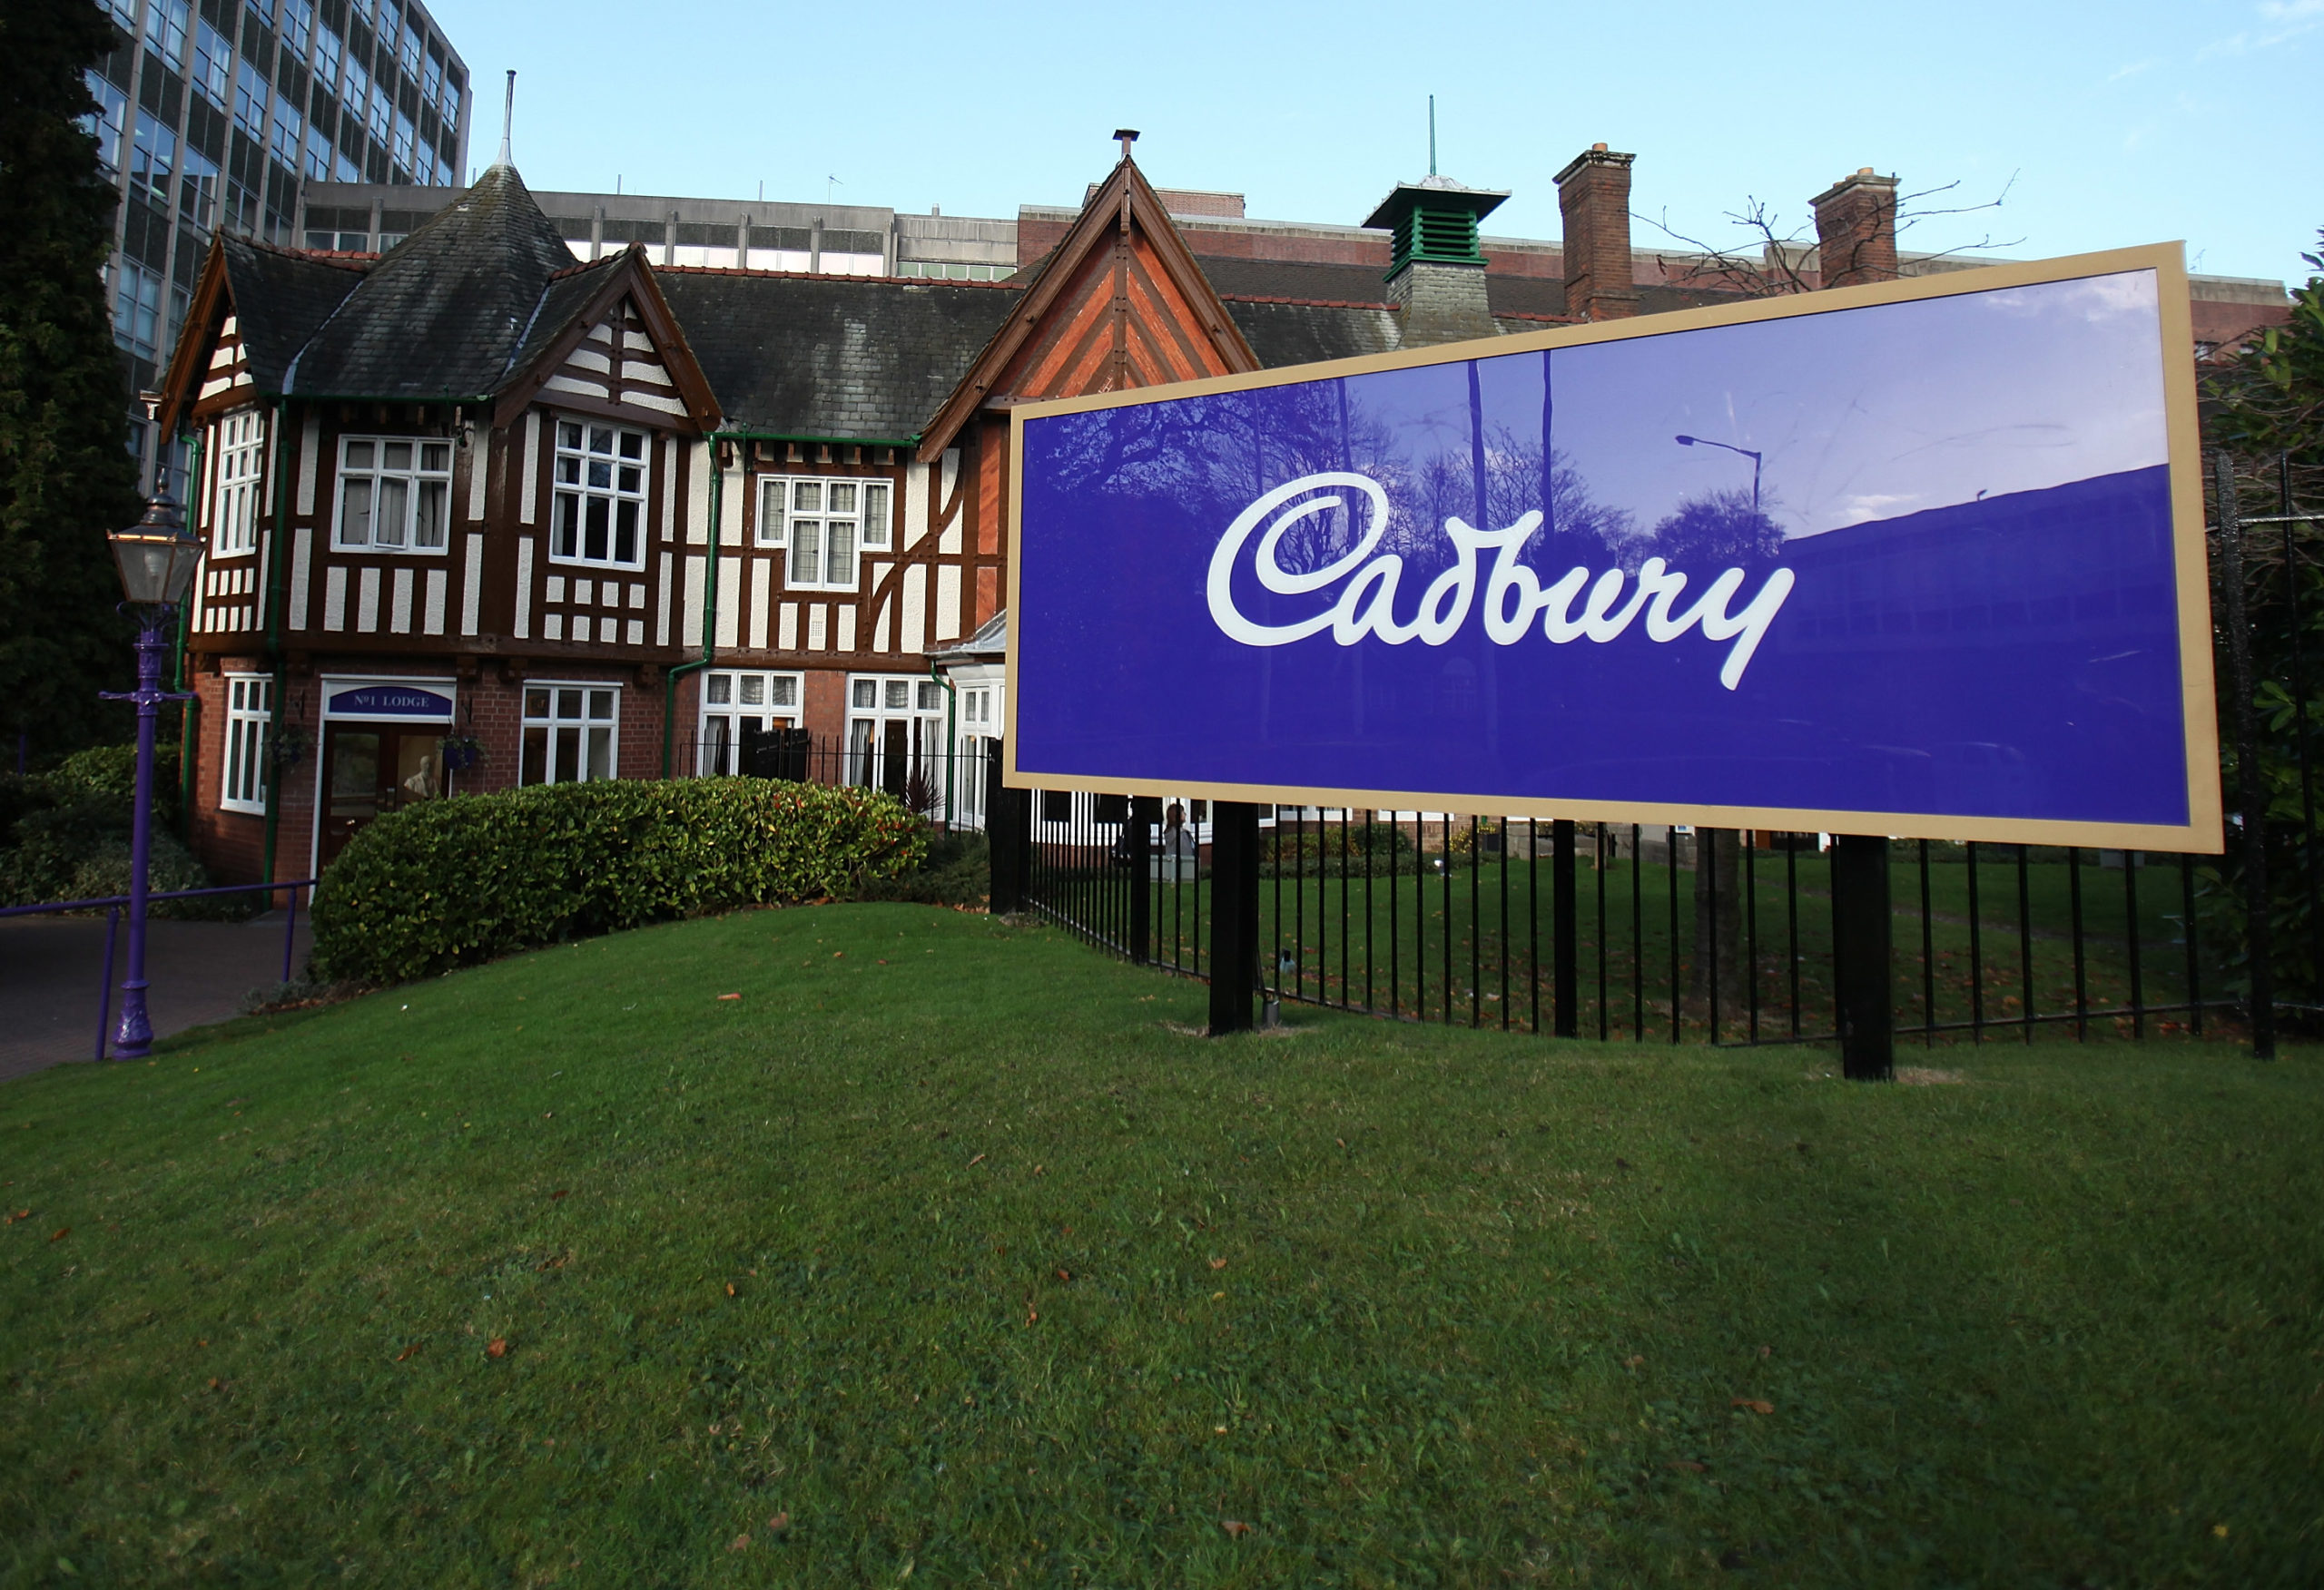 The Cadbury's factory in Birmingham